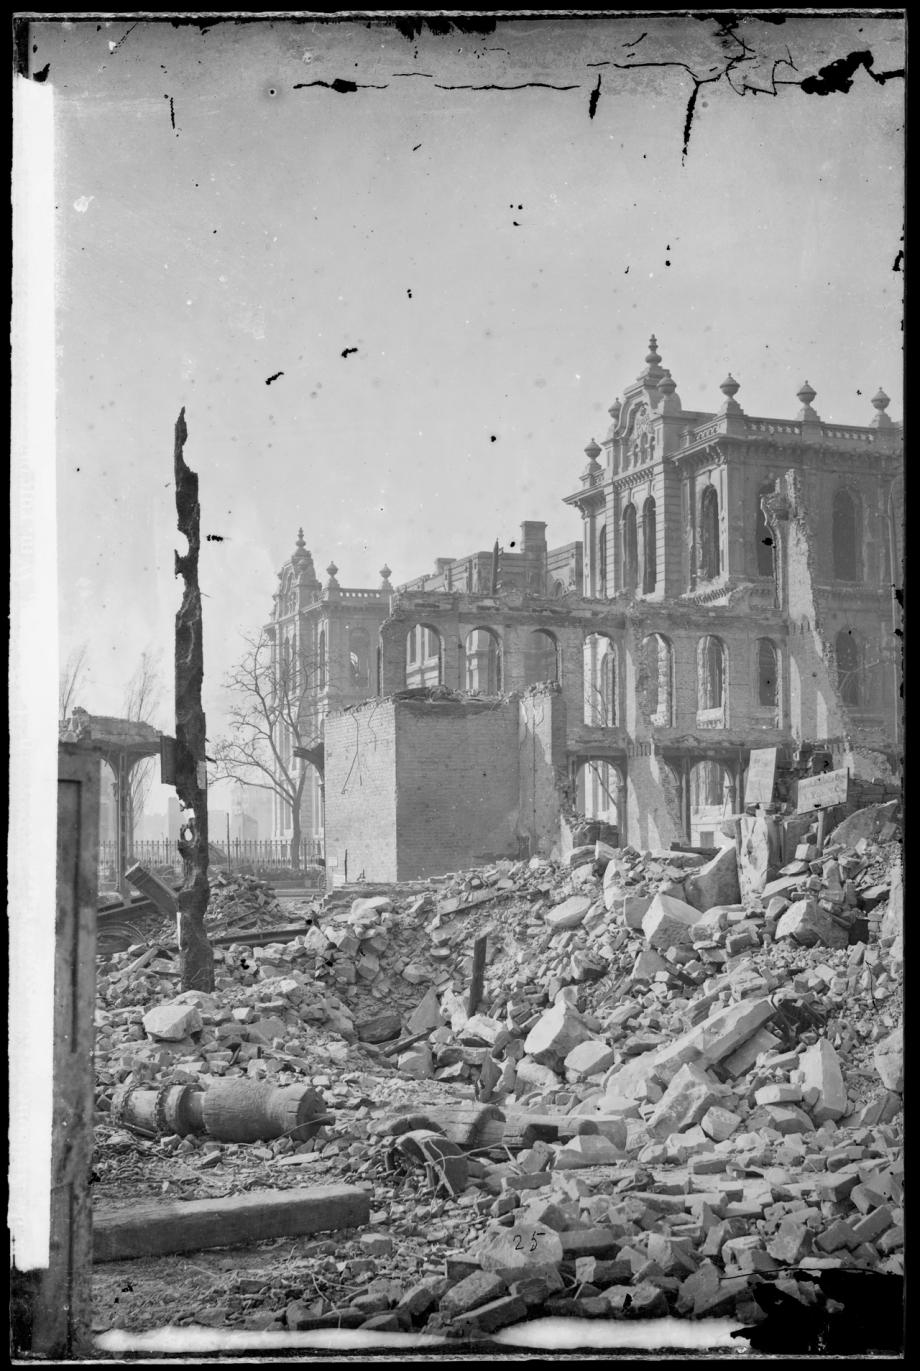 account of the chicago fire of 1871 (account of chicago fire used with permission of daughters of charity provincial archives) october 8-10, 1871 witnessed one of the defining events in the history of the city of chicago, the great fire of 1871.